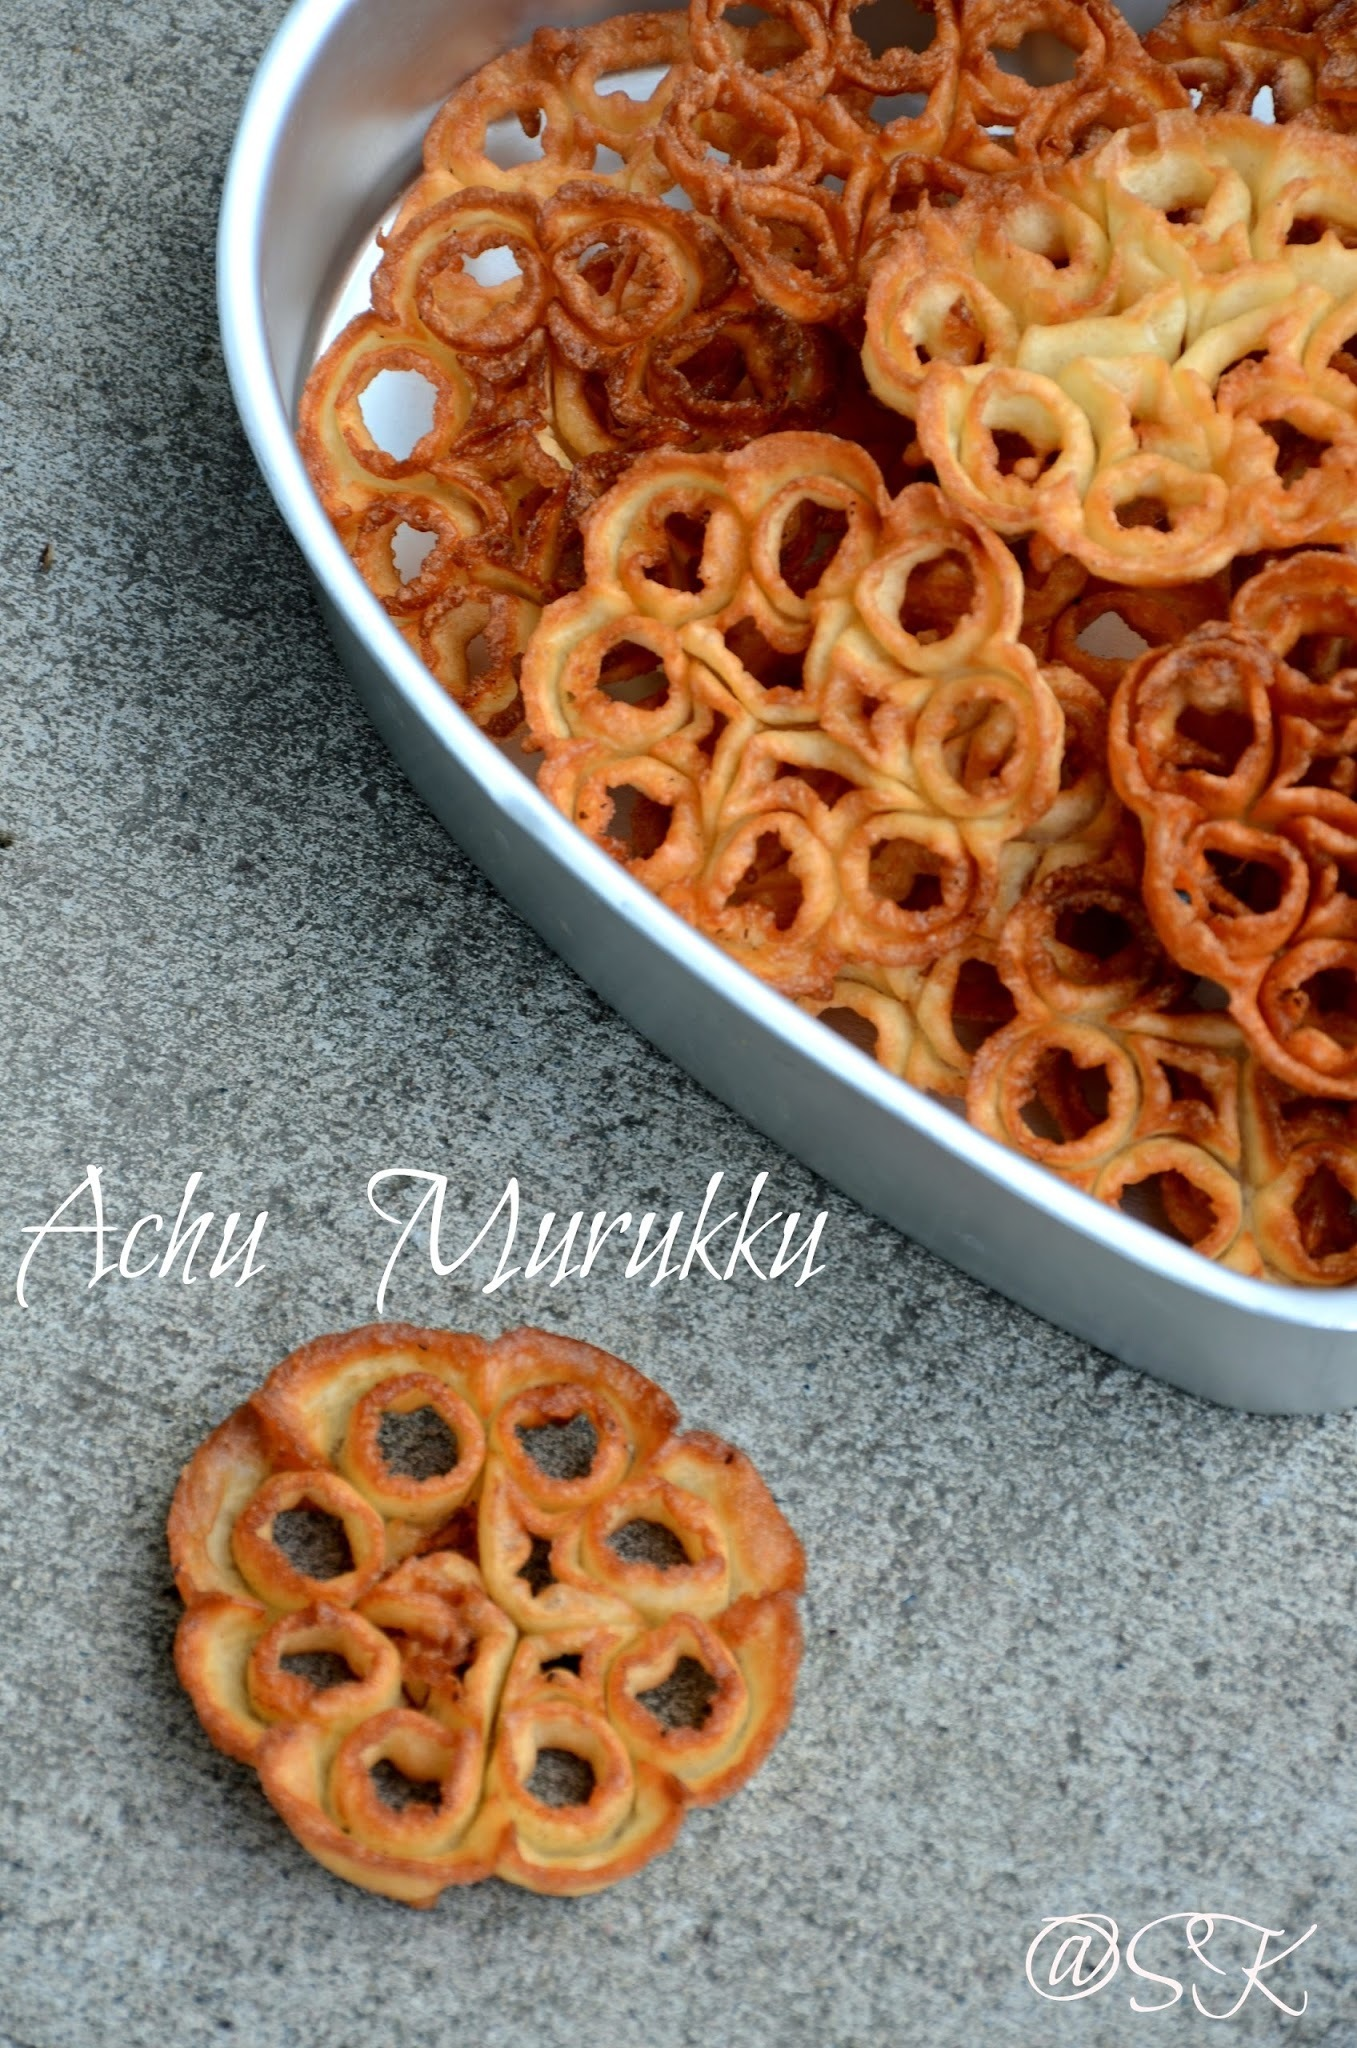 Rose Cookies - Achappam - அச்சு முறுக்கு - Christmas Recipes - Step by Step